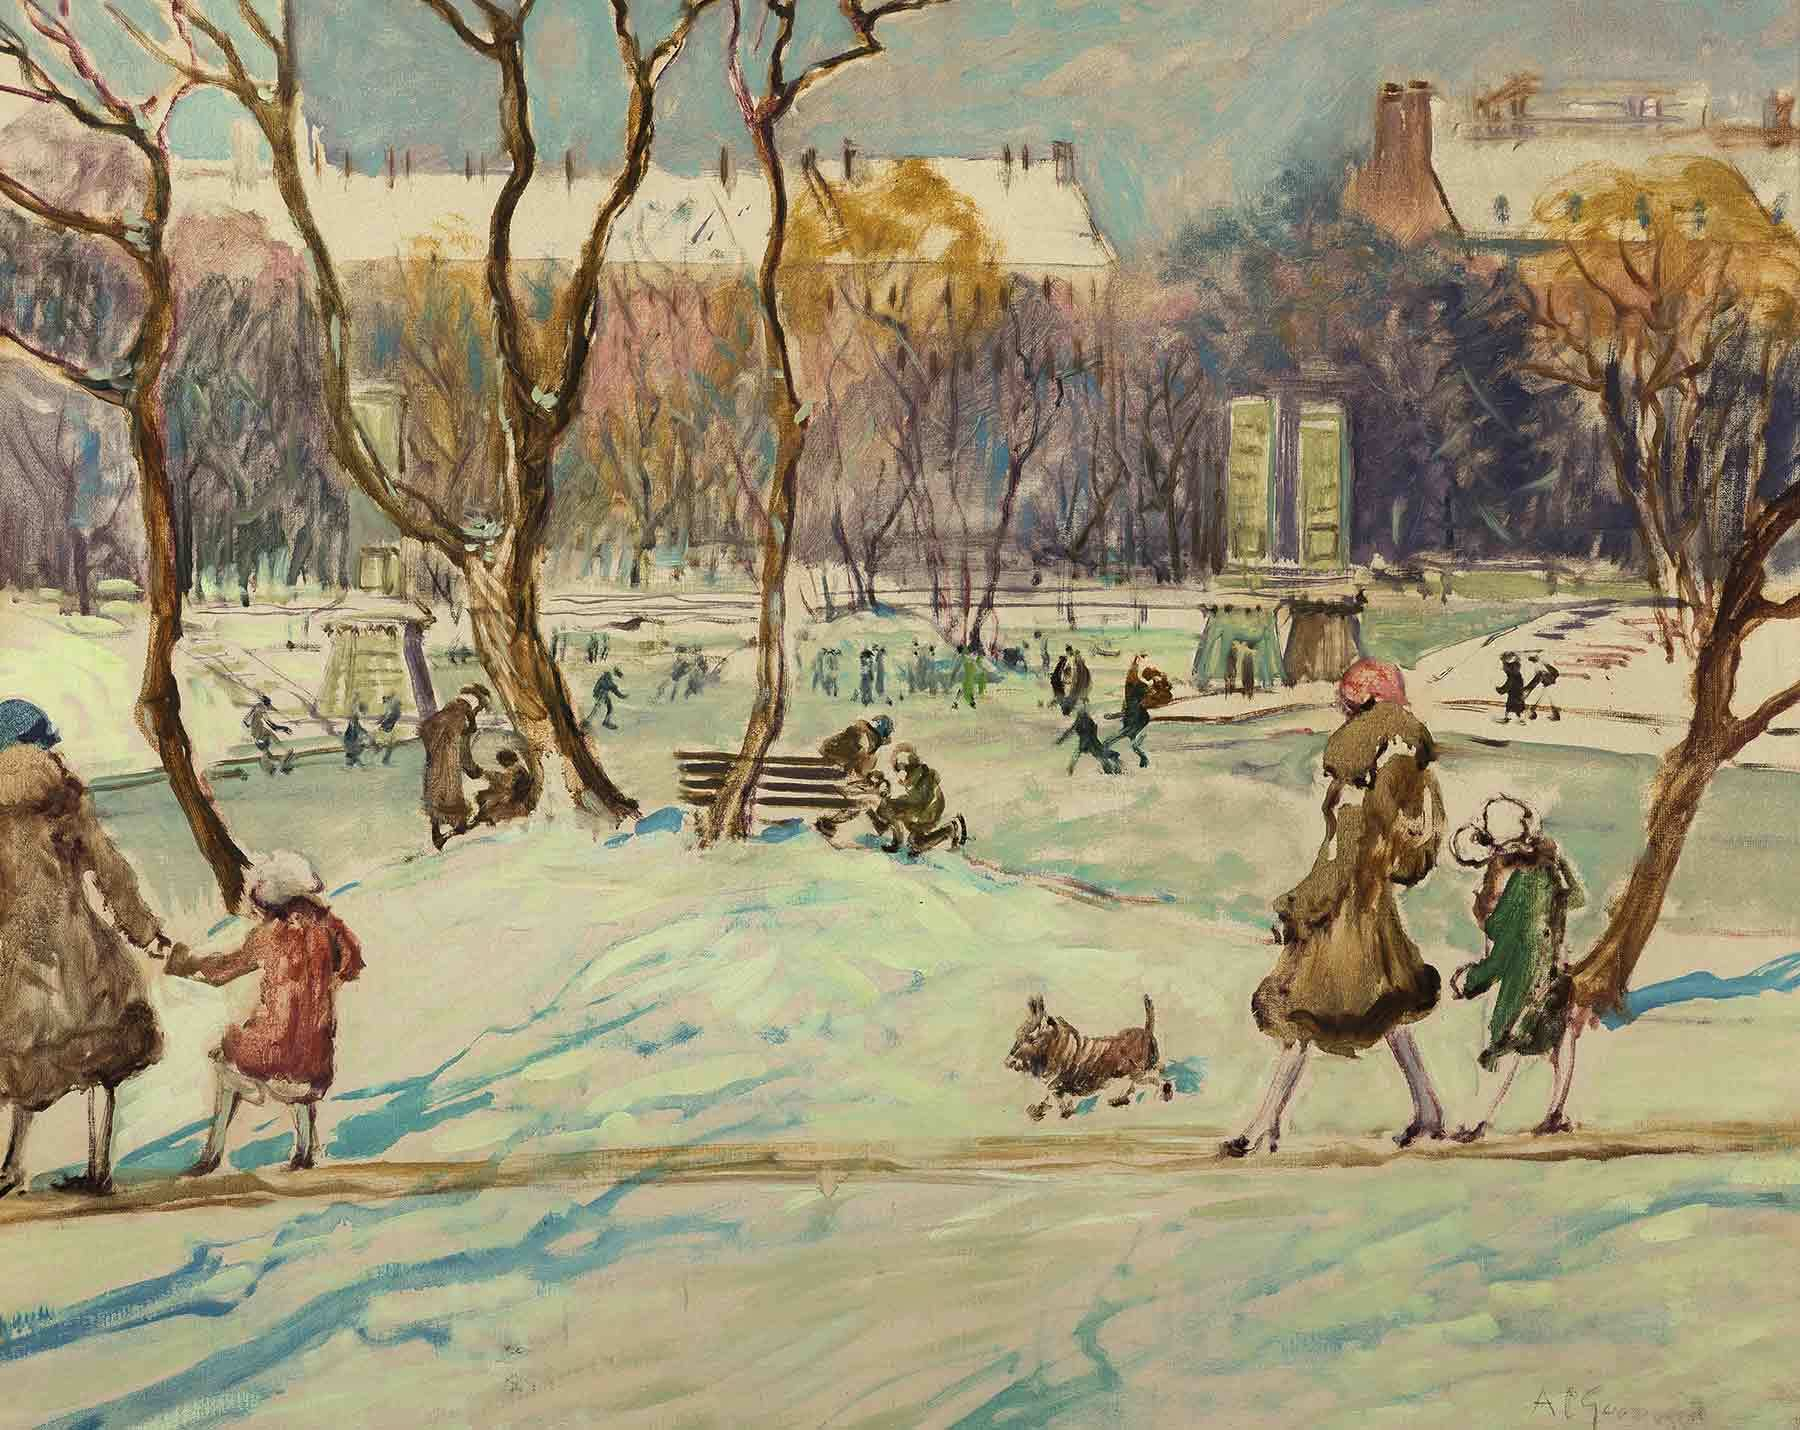 A painting of the Boston Public Garden in Winter, 1930s. Oil on canvas